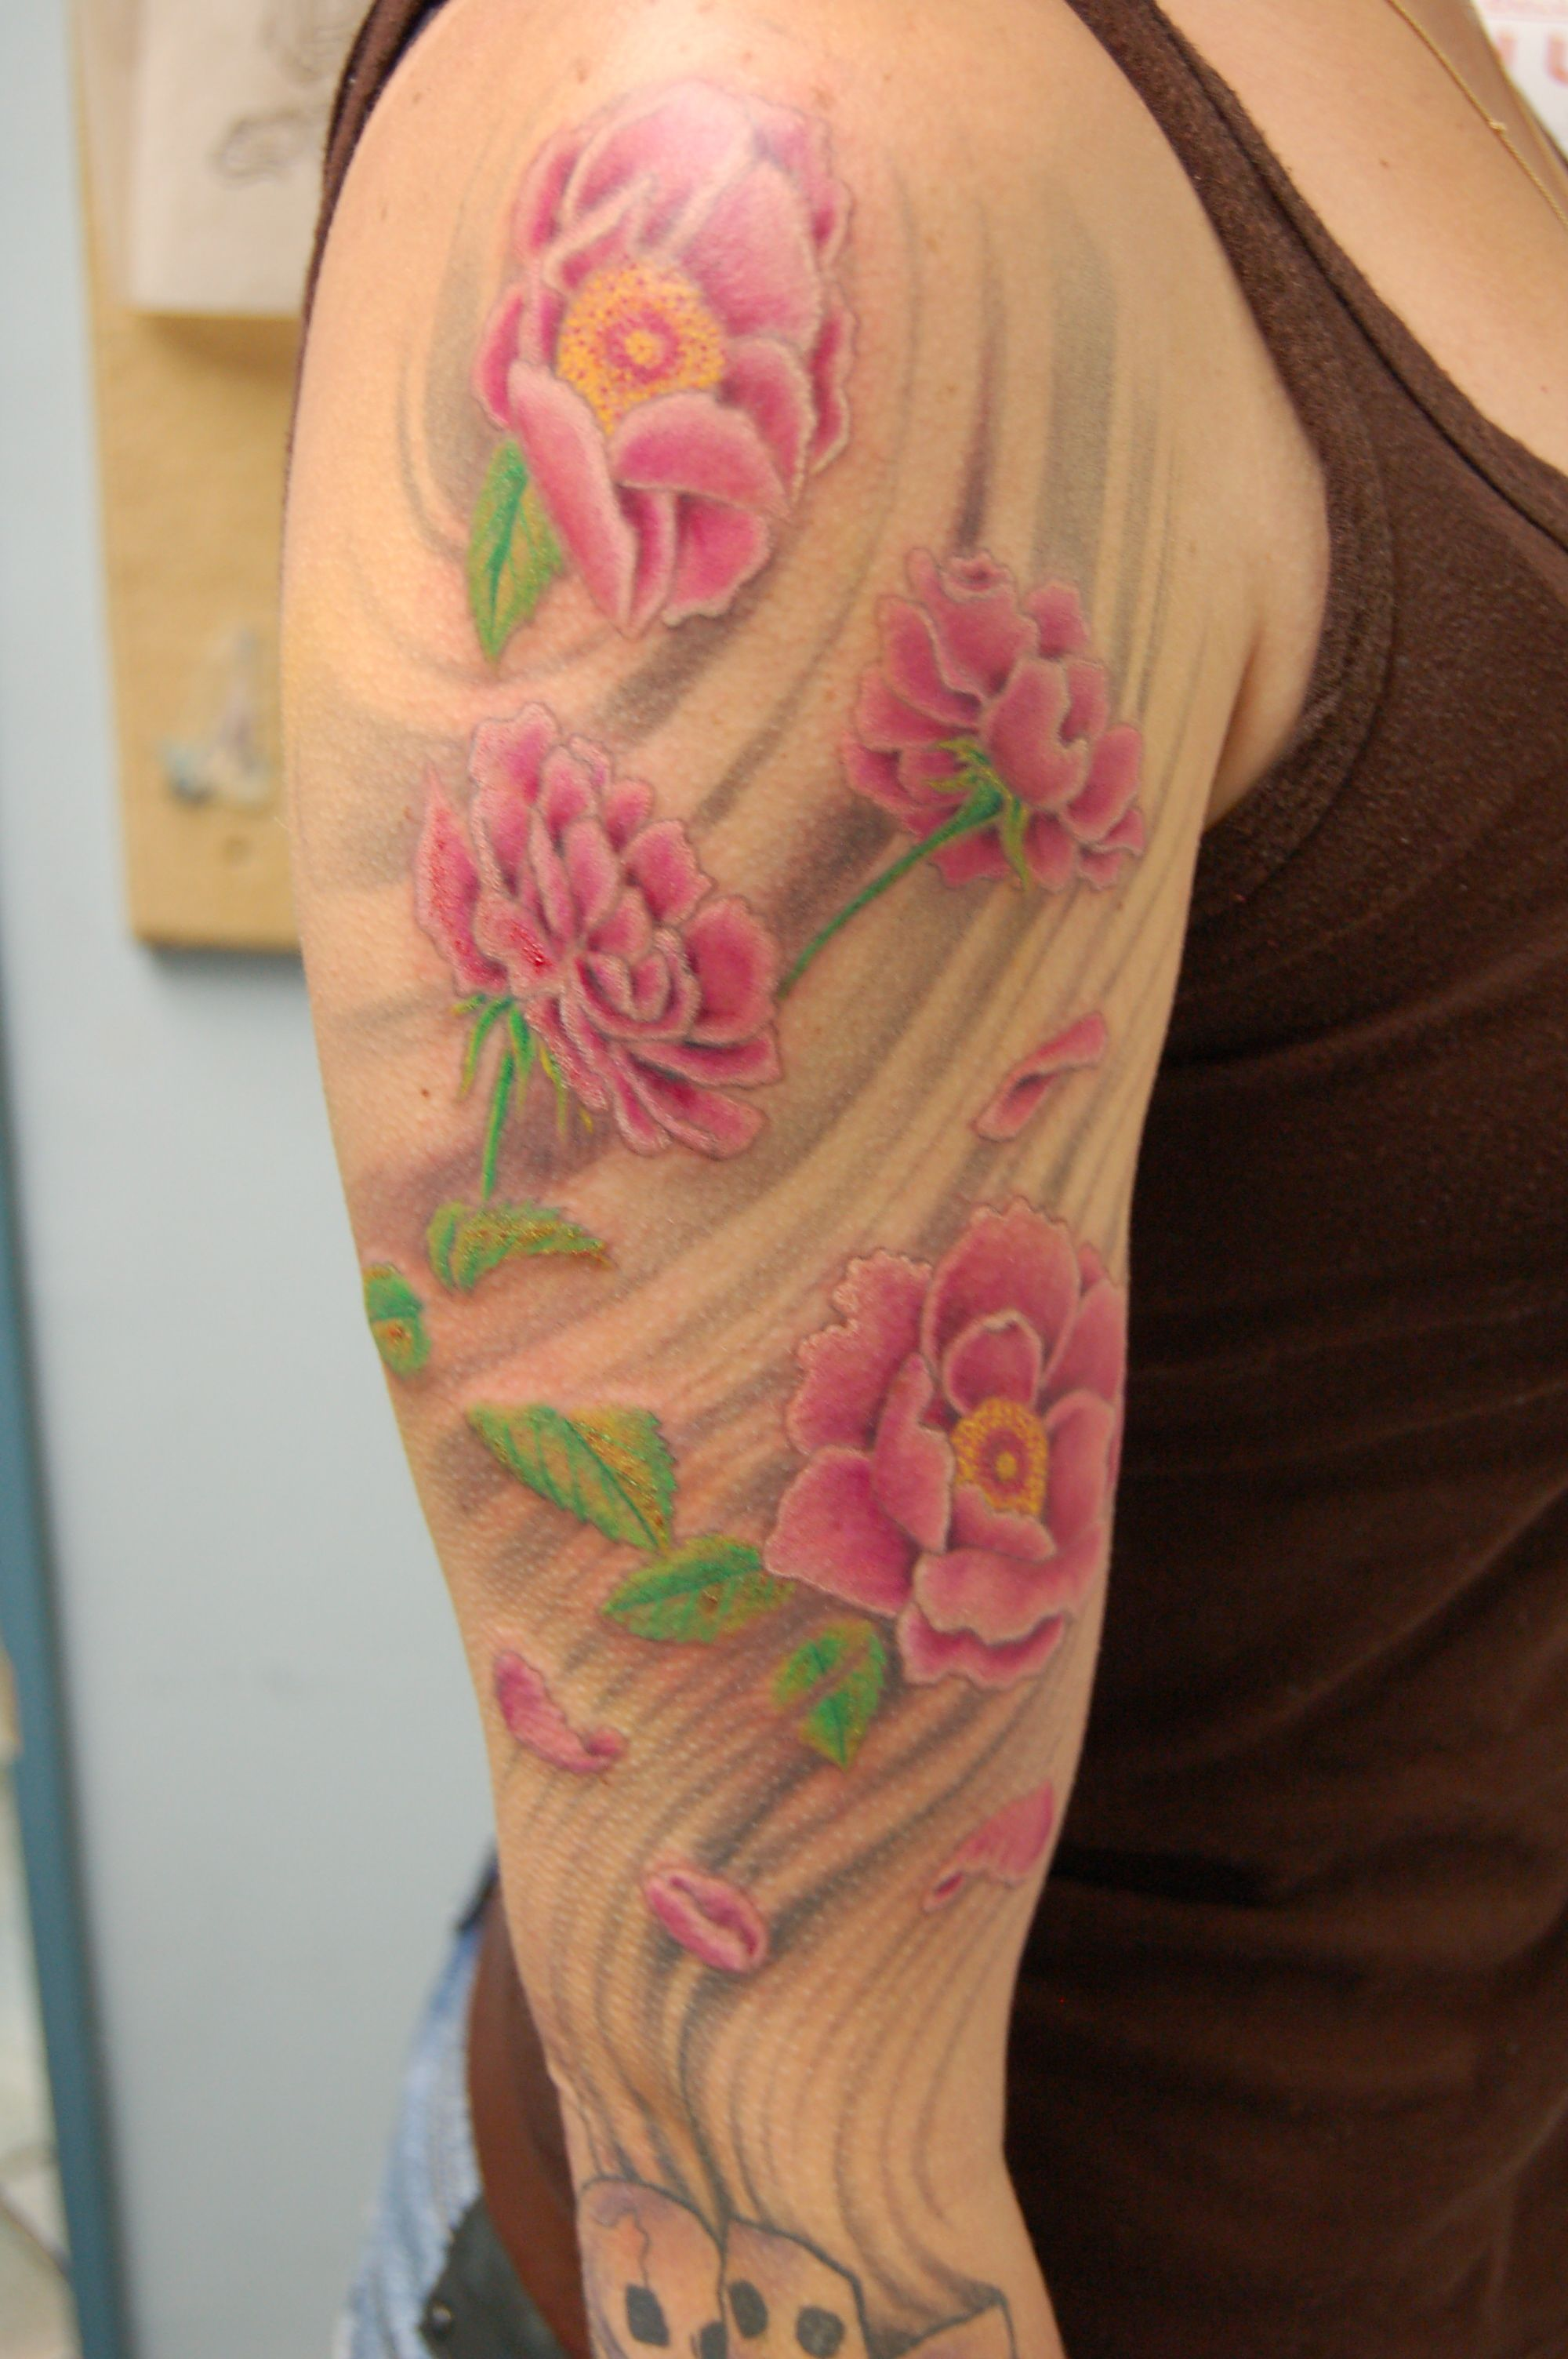 Peony Sleeve By Tom Beasley Dragonmoontattoo Customtattoo Tattoosforwomen Tombeasleytattoo Eternalink Orchidtattoos F Moon Tattoo Tattoos Sleeve Tattoos